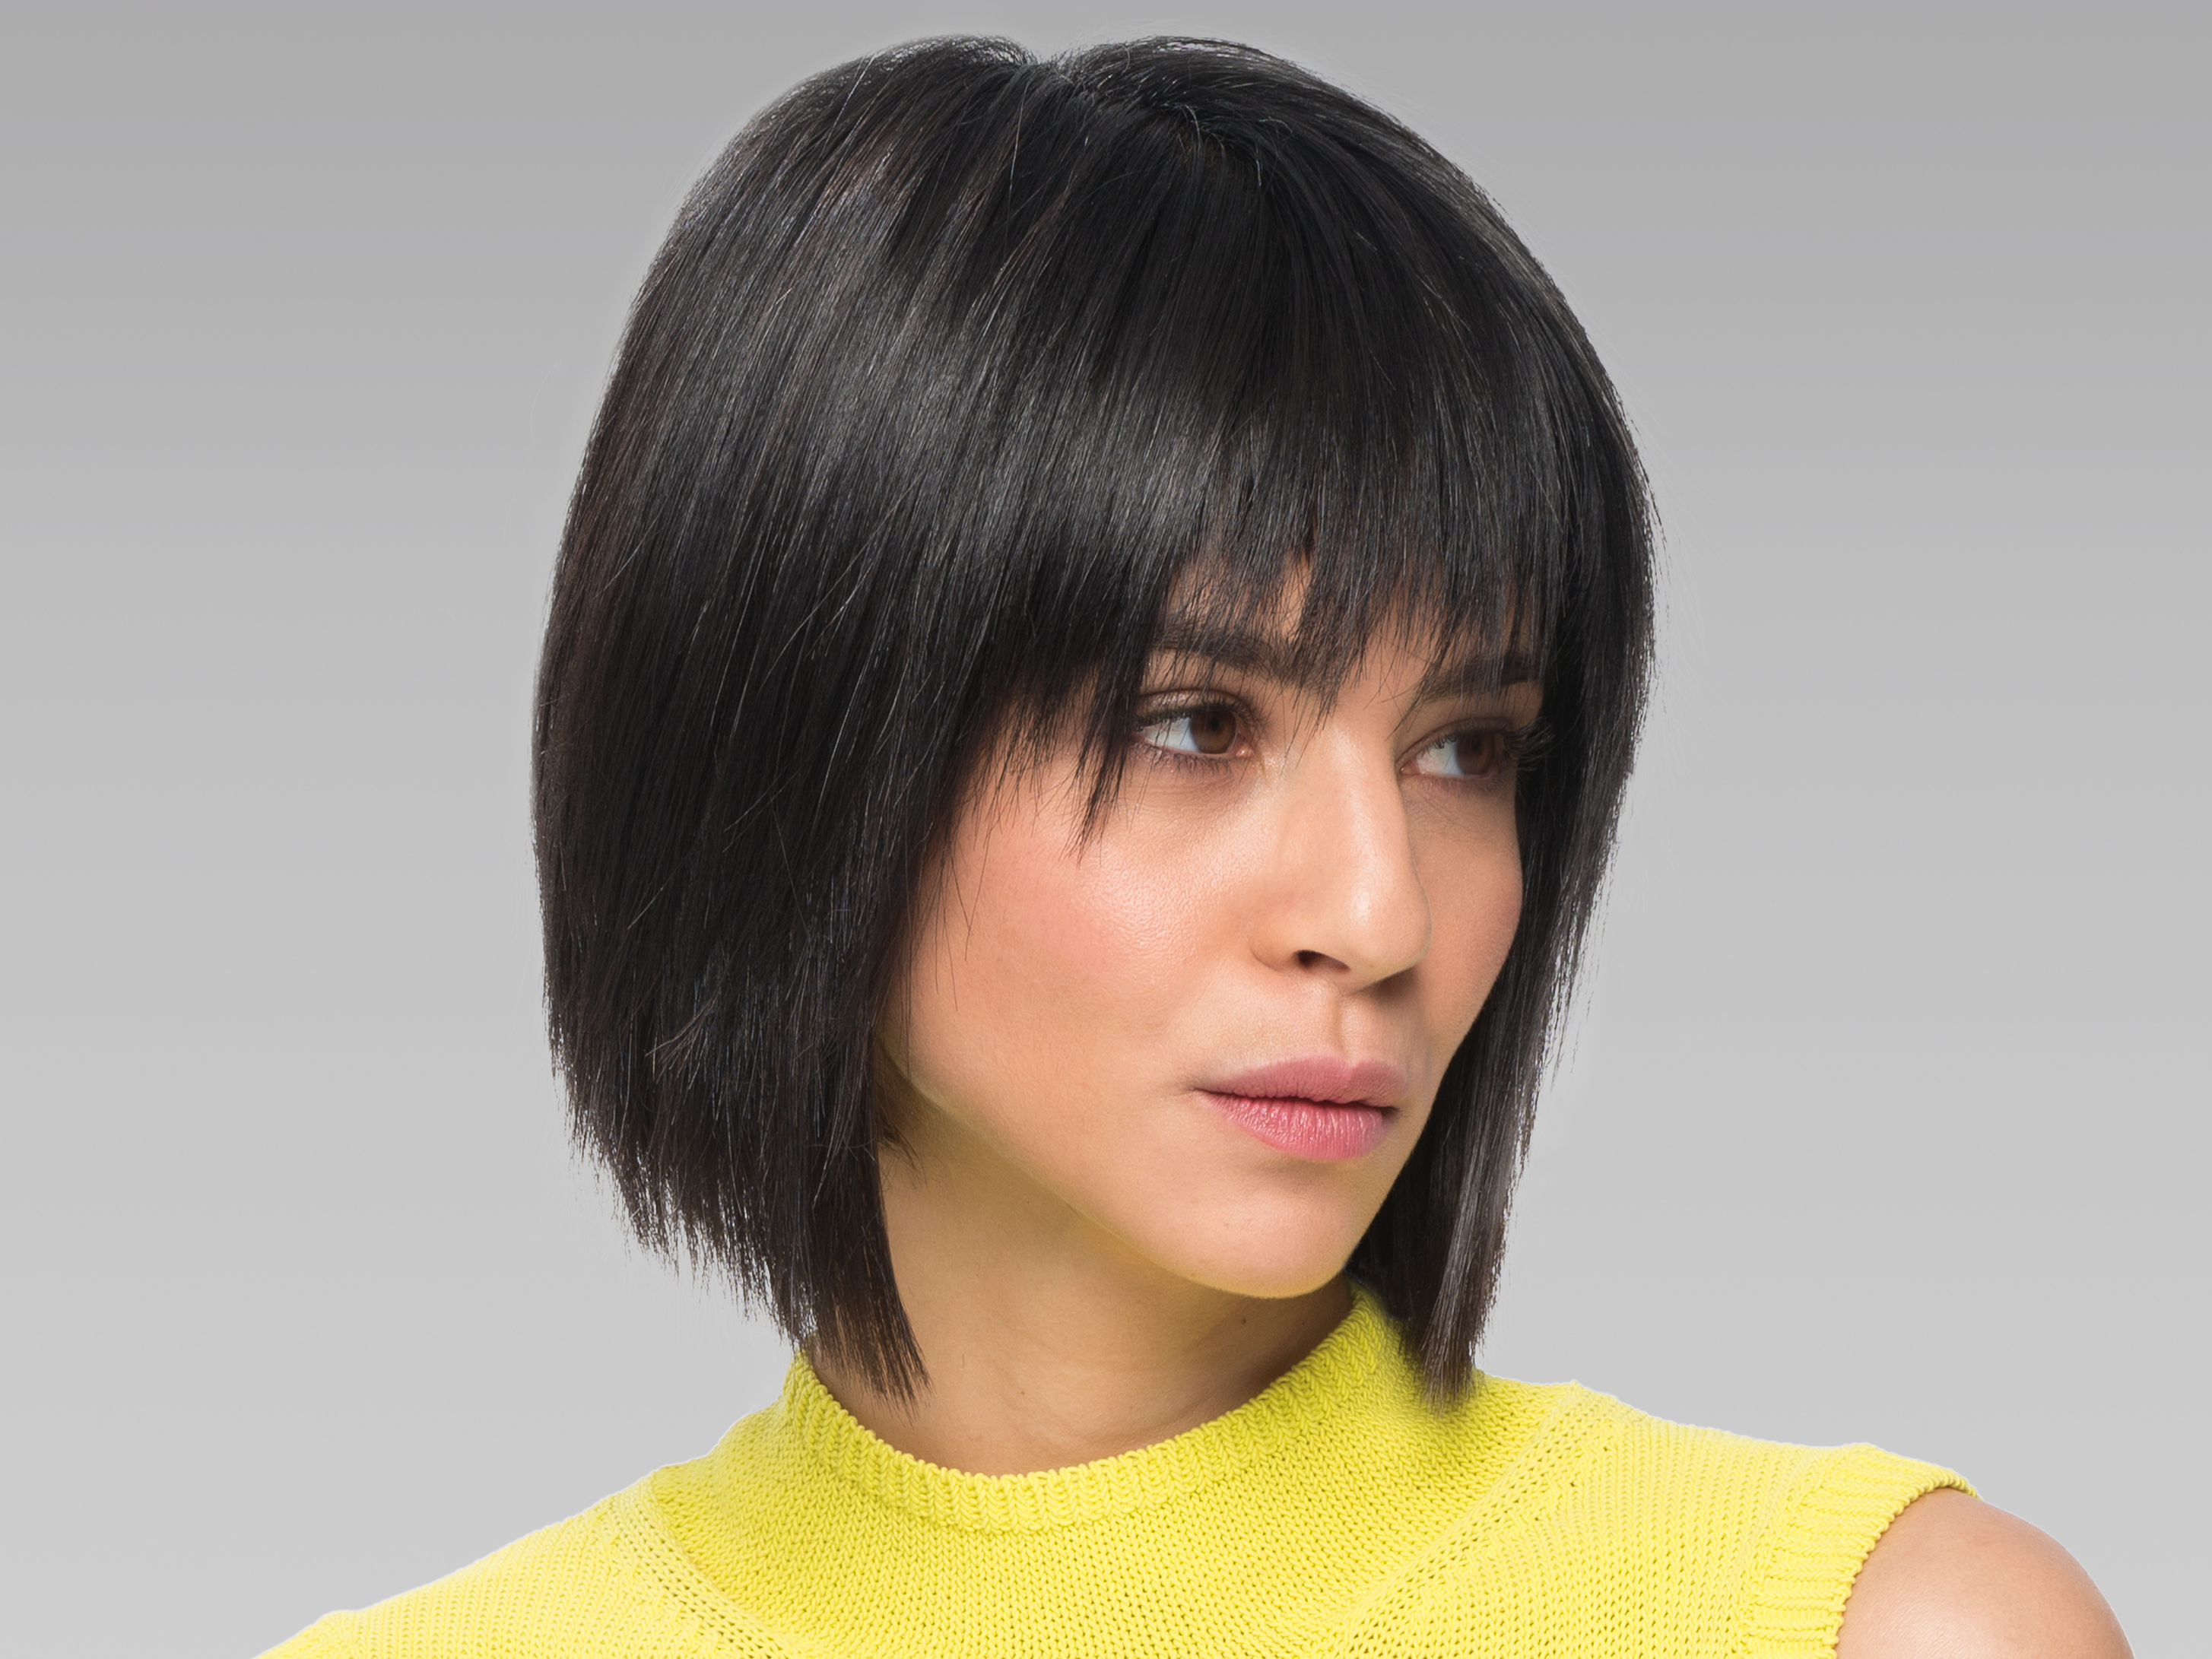 Bob With Layers – Women's Hairstyles | Supercuts For Classic Layered Bob Hairstyles For Thick Hair (View 16 of 20)